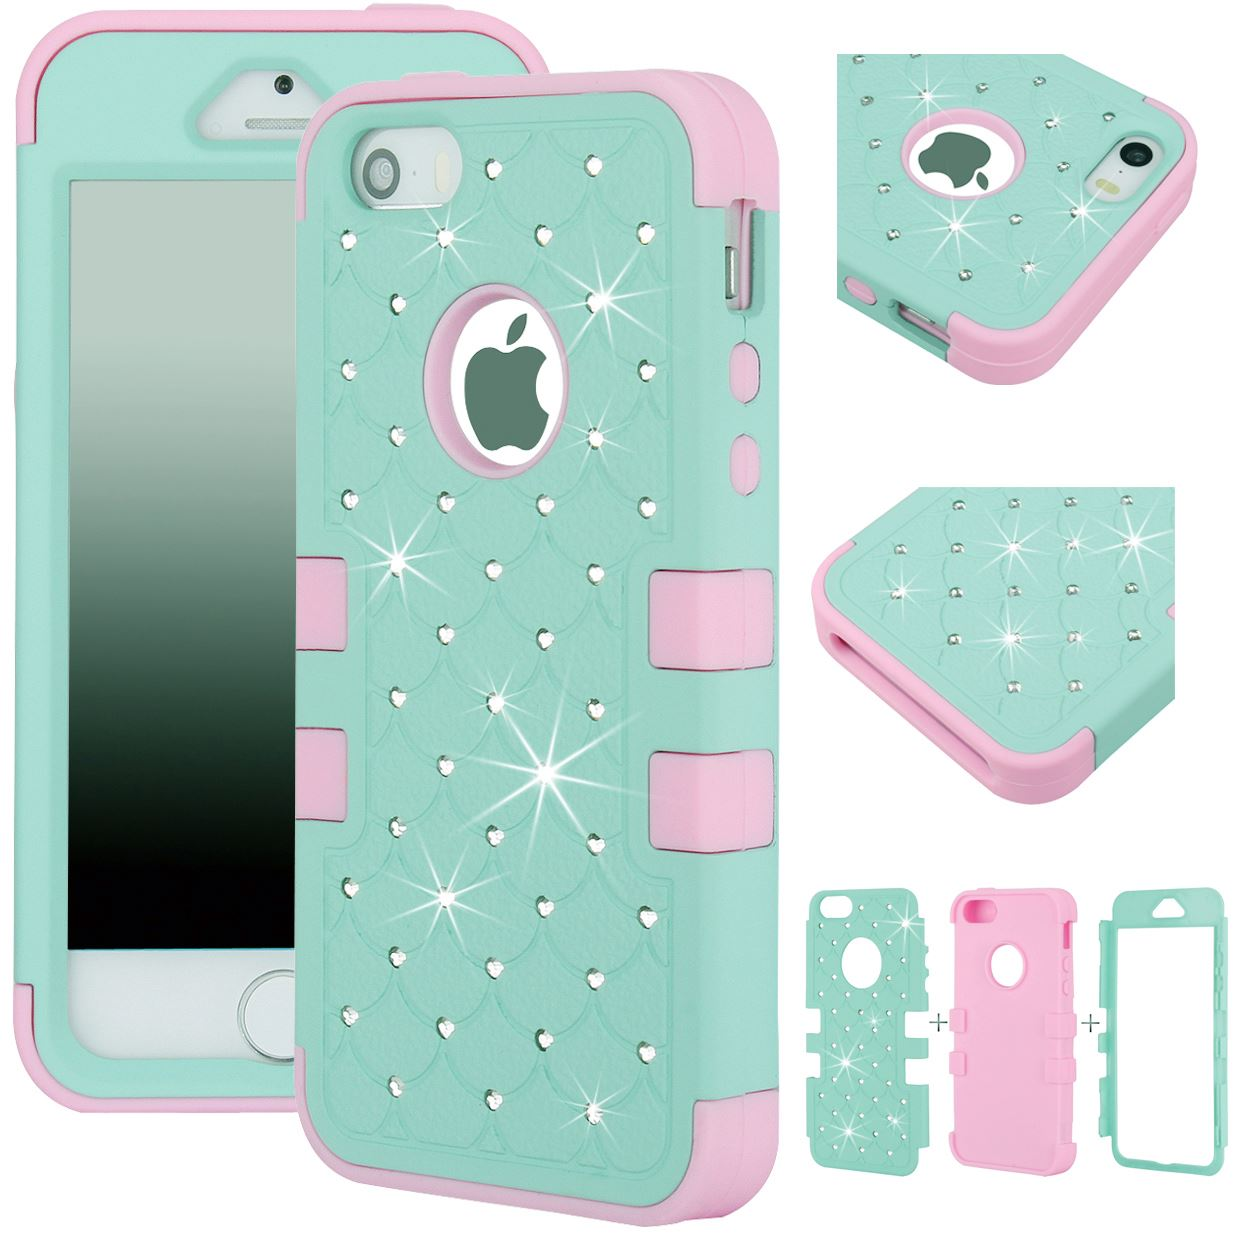 Sweet Mint & Pink 3 Layer Bling Crystals Hard/Soft Durable Protective Case Cover